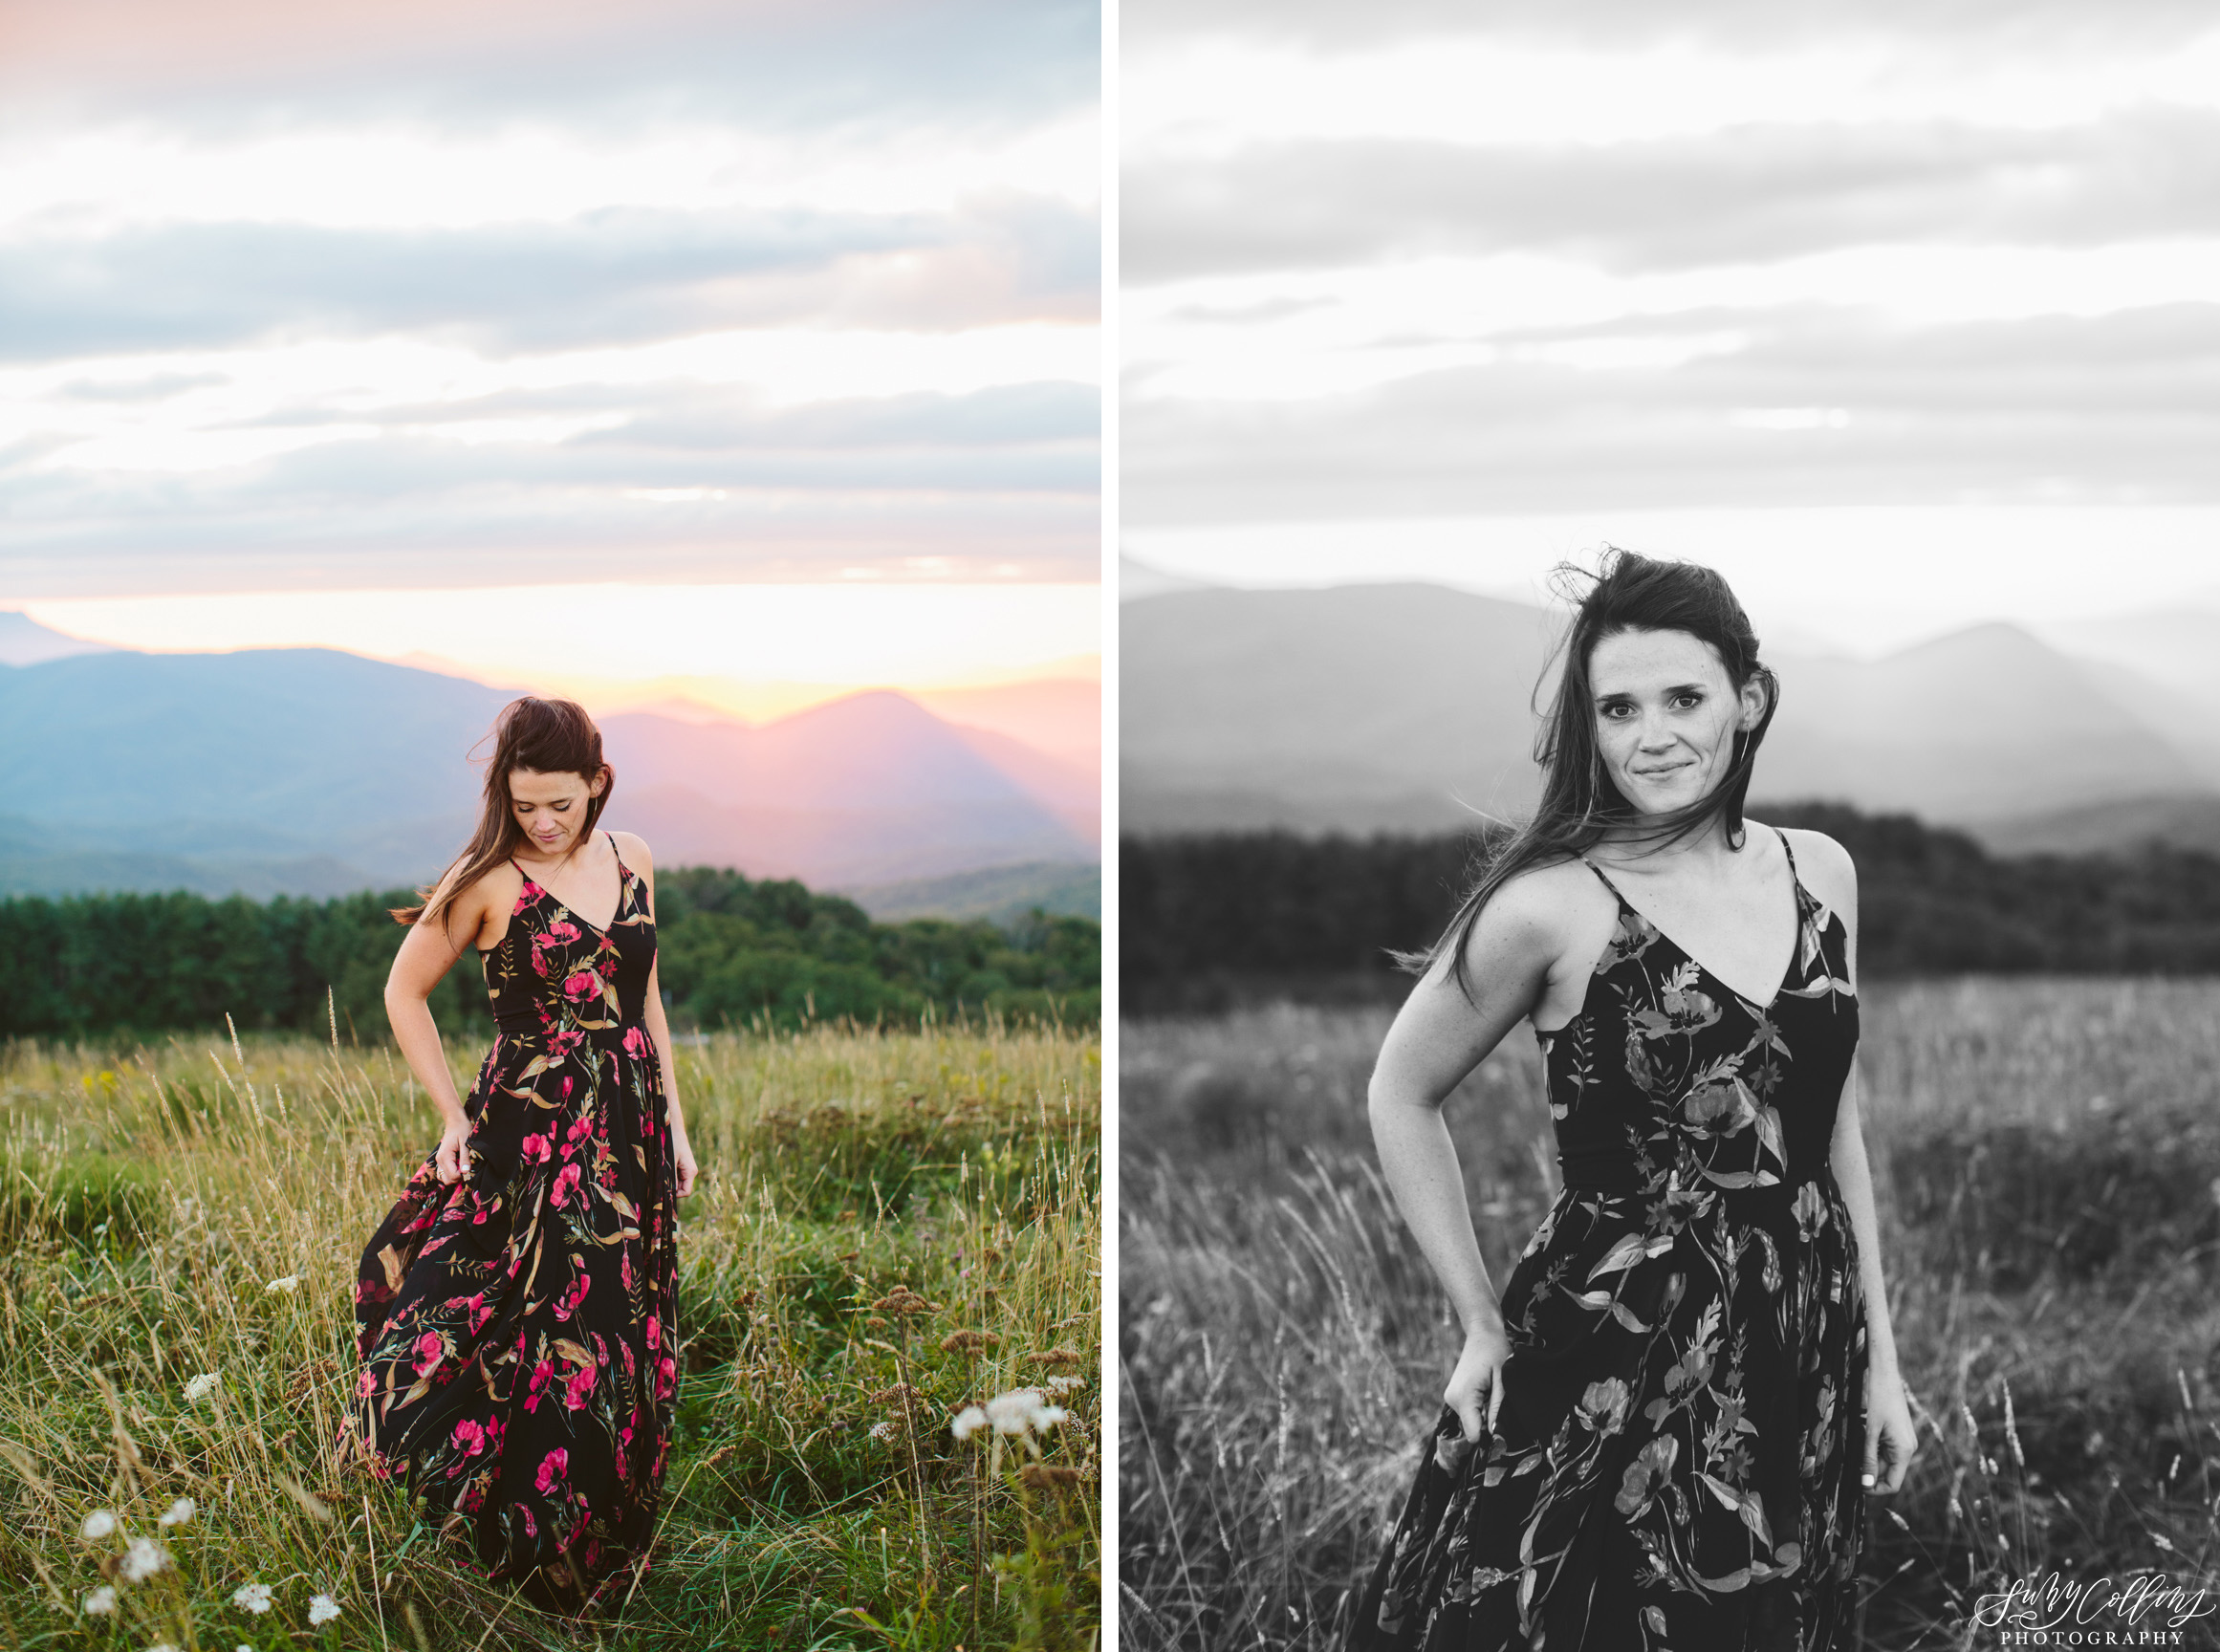 poses, couples, outdoor, max patch, Knoxville, Tennessee, engagement, sunset, evening, love, vibrant, colorful, bright, creative, romantic, natural, light and airy, natural light, passion, inspiration, intimate, outfits, fountain, woods, field, sunrise, windy, North Carolina, black and white, bride